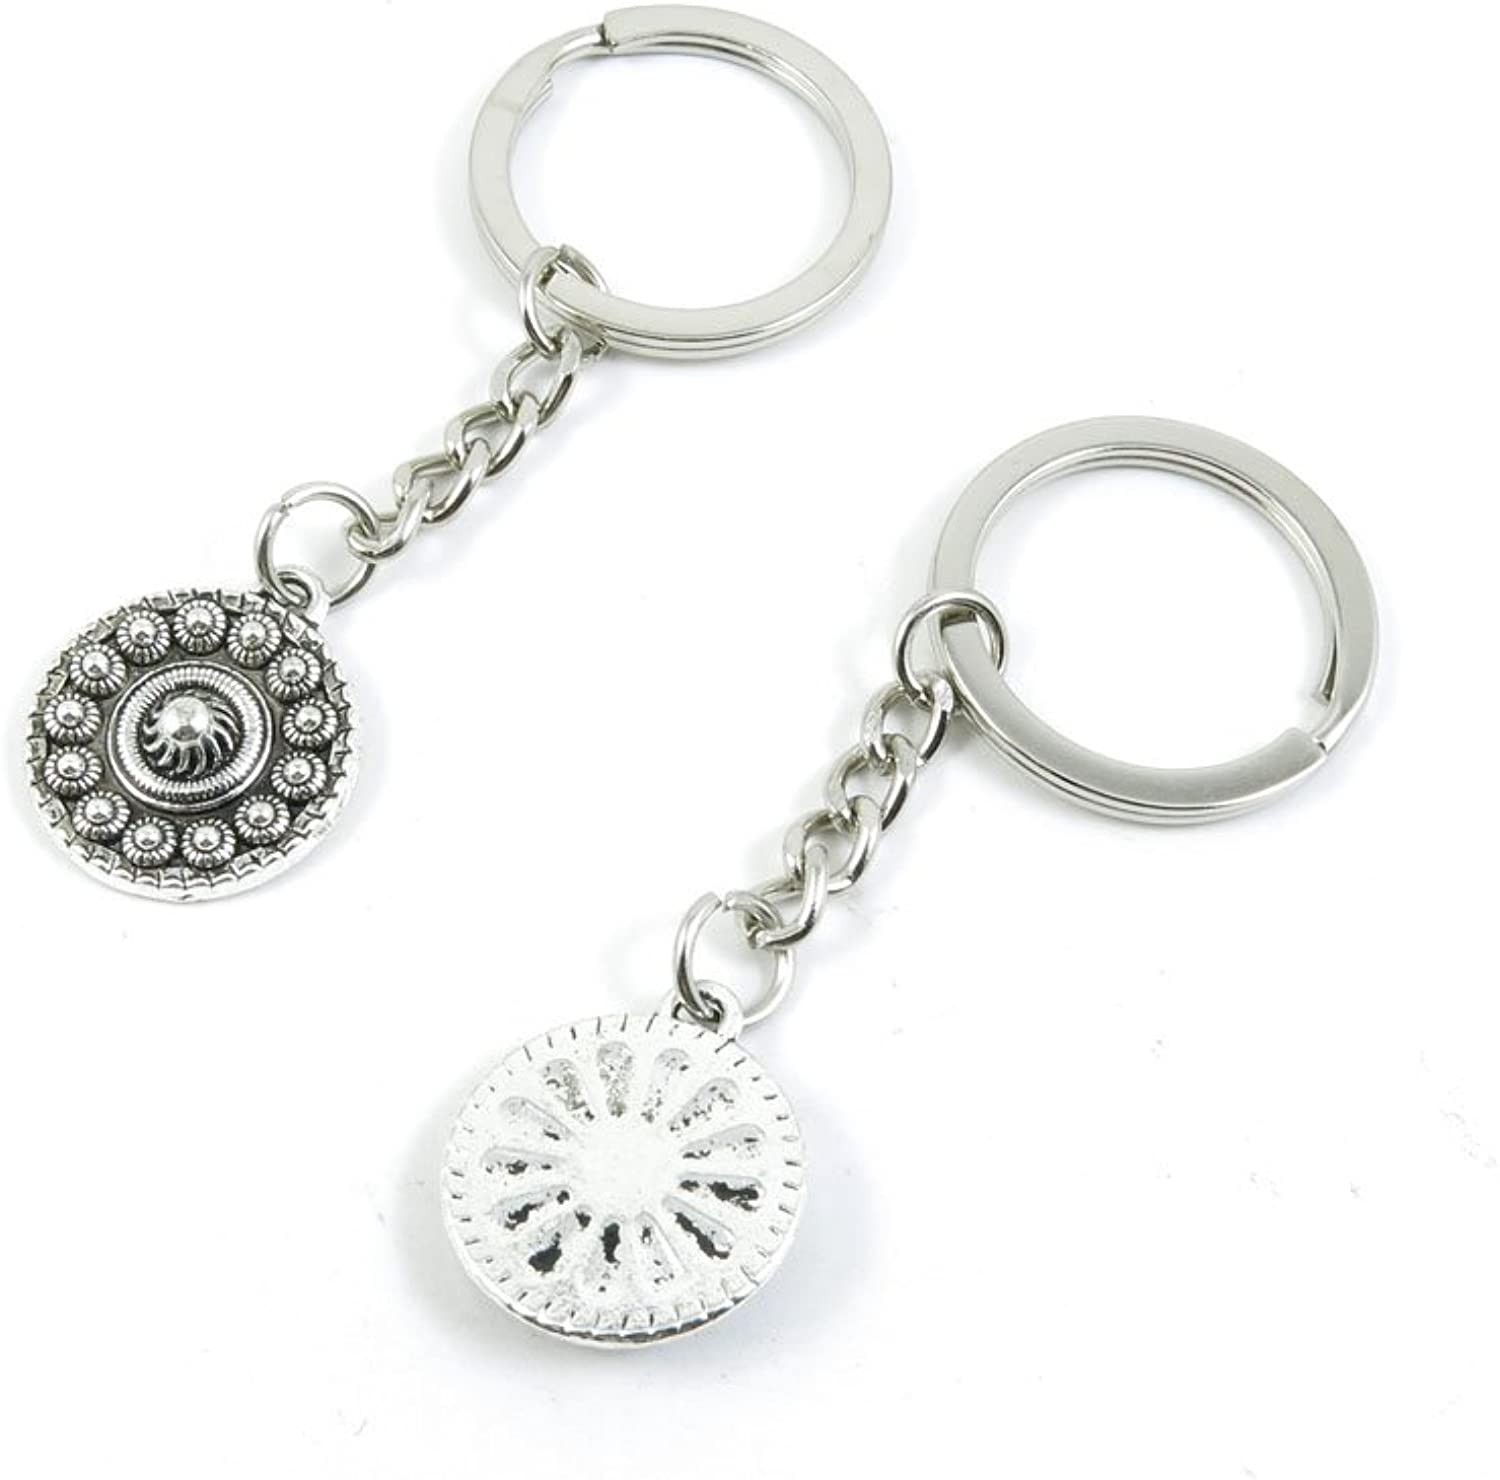 100 Pieces Keychain Keyring Door Car Key Chain Ring Tag Charms Bulk Supply Jewelry Making Clasp Findings V8BP9Z Sun Relief